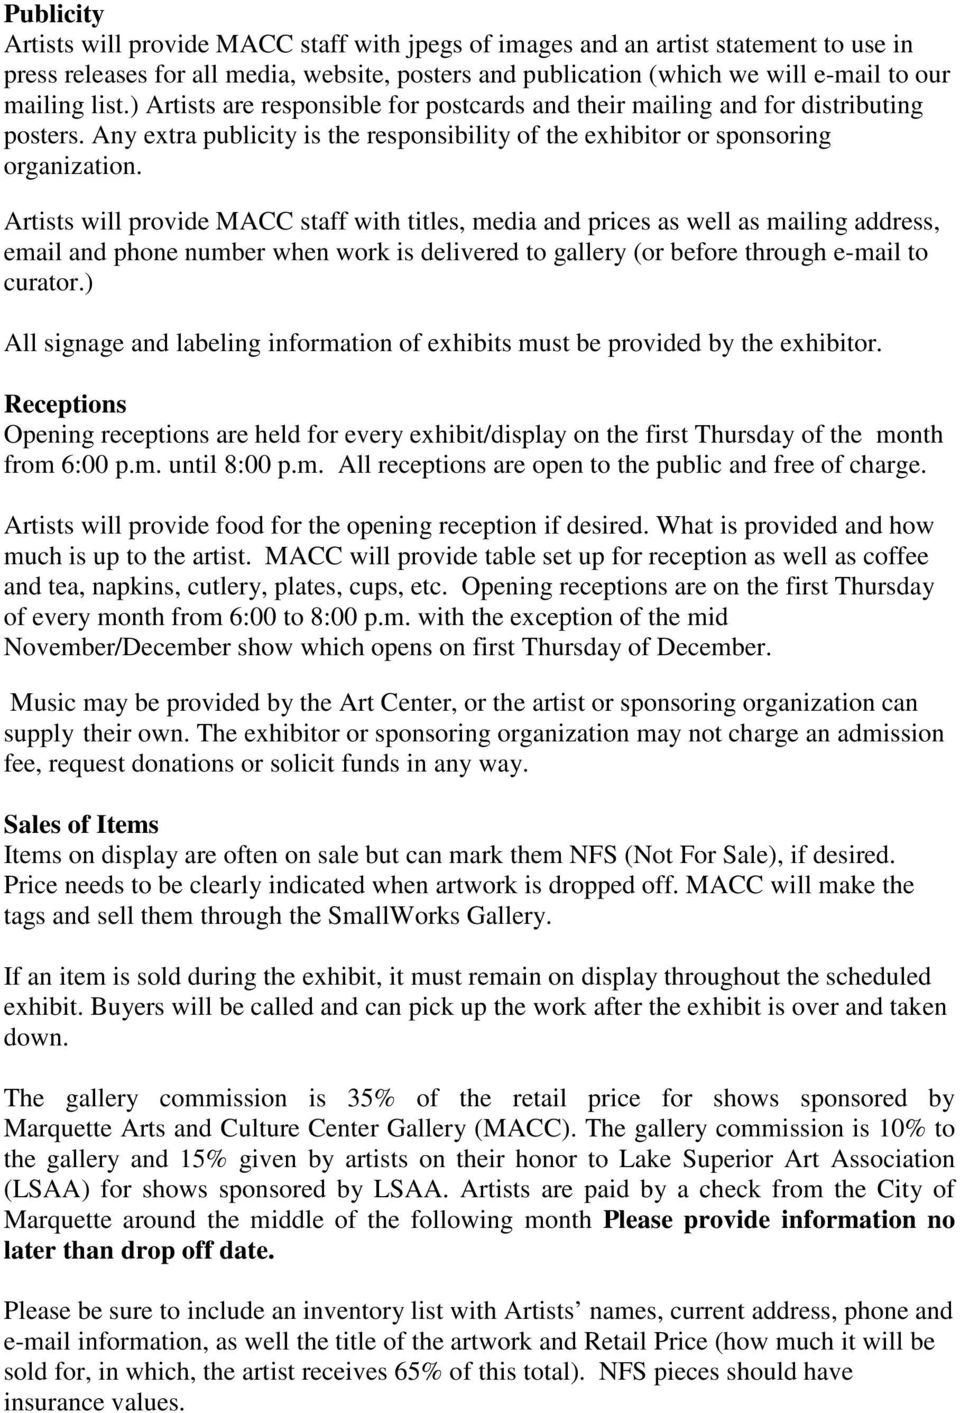 Artists will provide MACC staff with titles, media and prices as well as mailing address, email and phone number when work is delivered to gallery (or before through e-mail to curator.